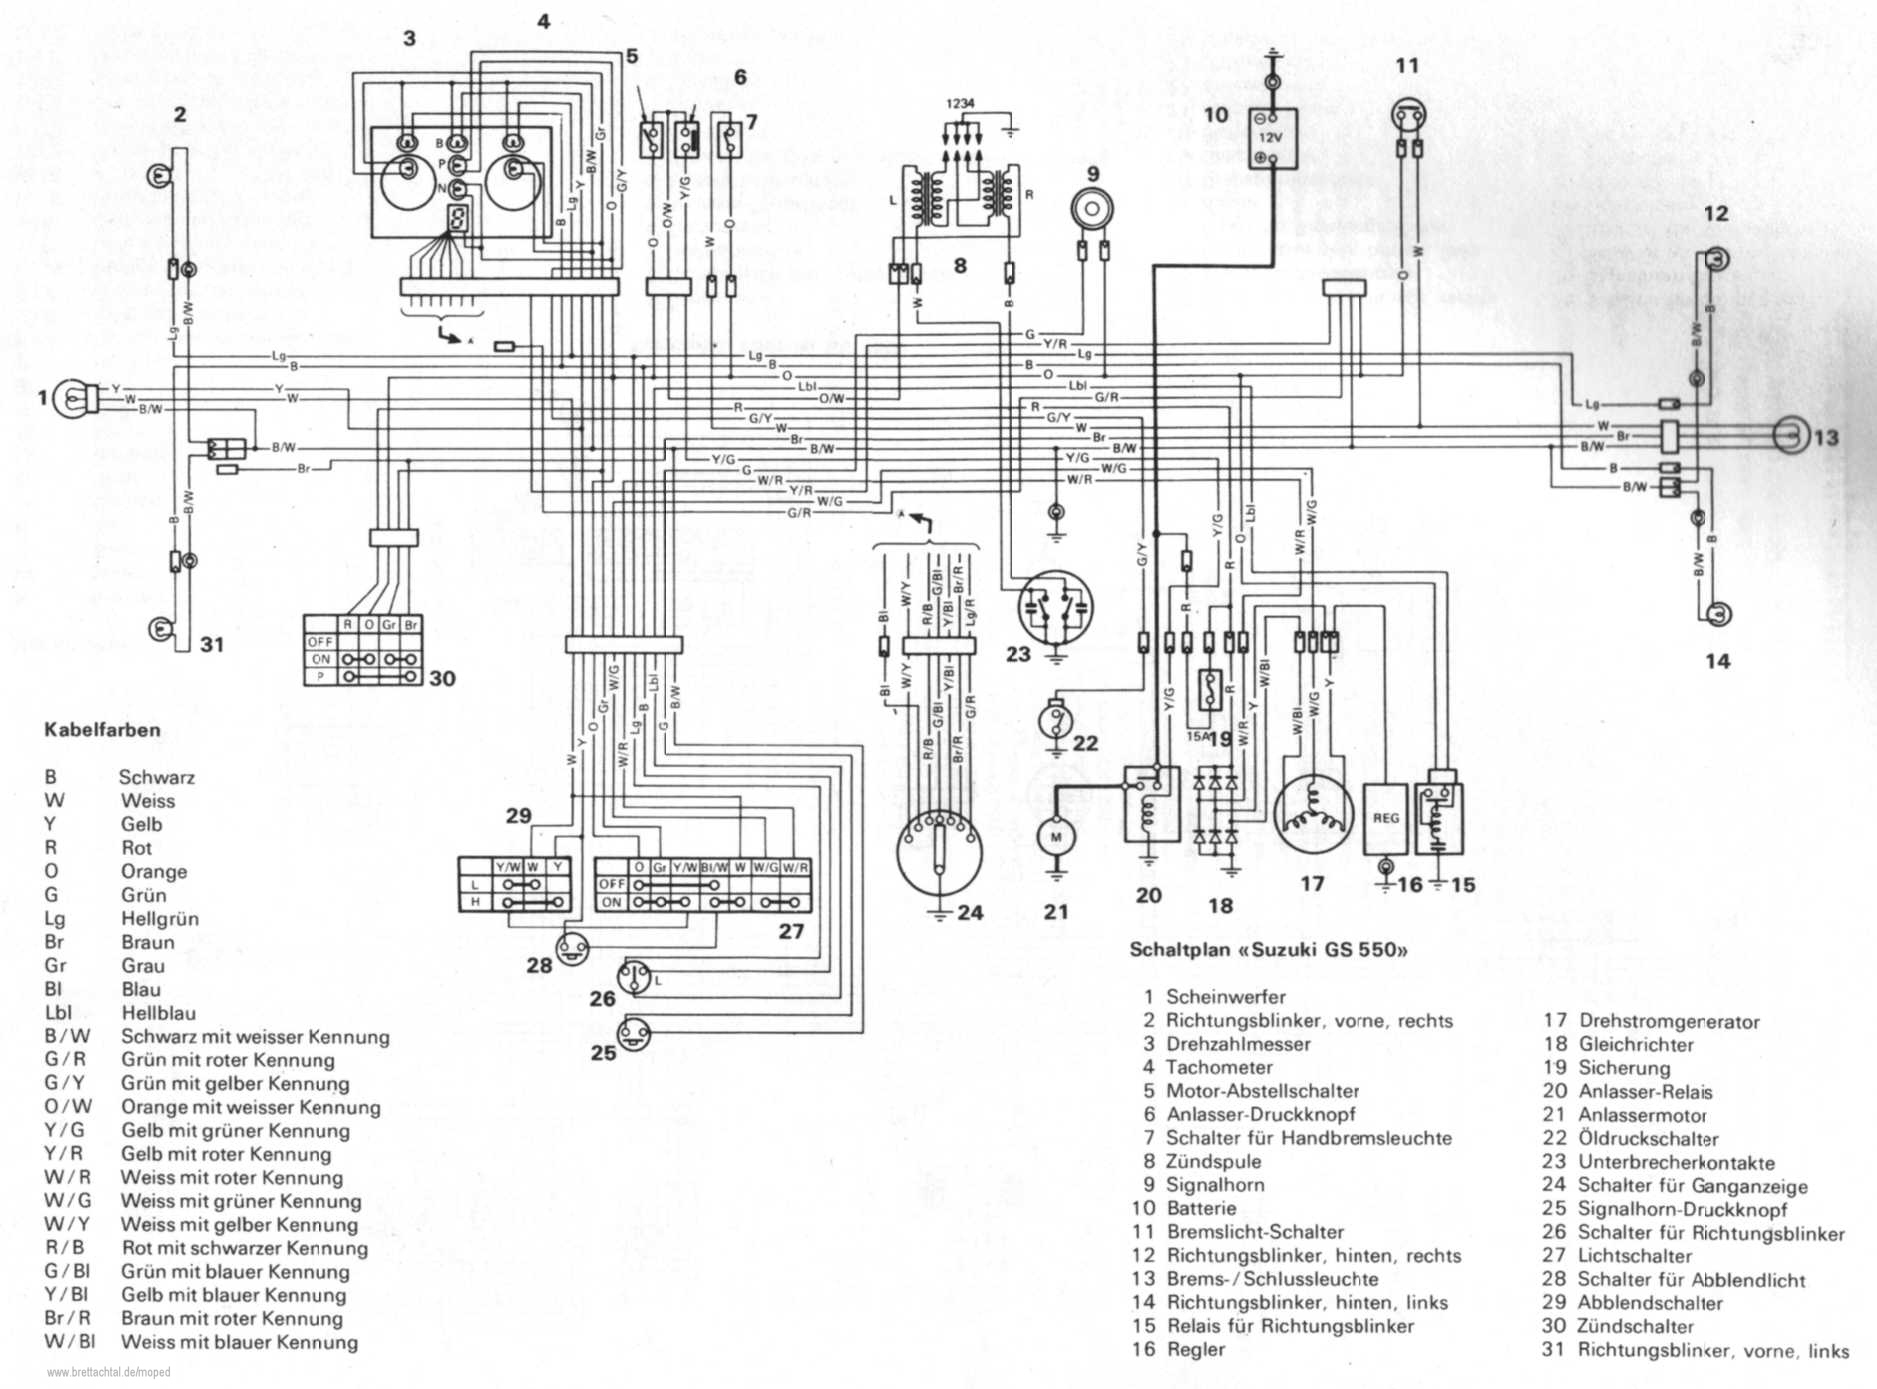 Suzuki Gs 550 Wiring Diagram - Cable Phone Line Wiring Diagram for Wiring  Diagram Schematics | Gs550 Wiring Diagram |  | Wiring Diagram Schematics